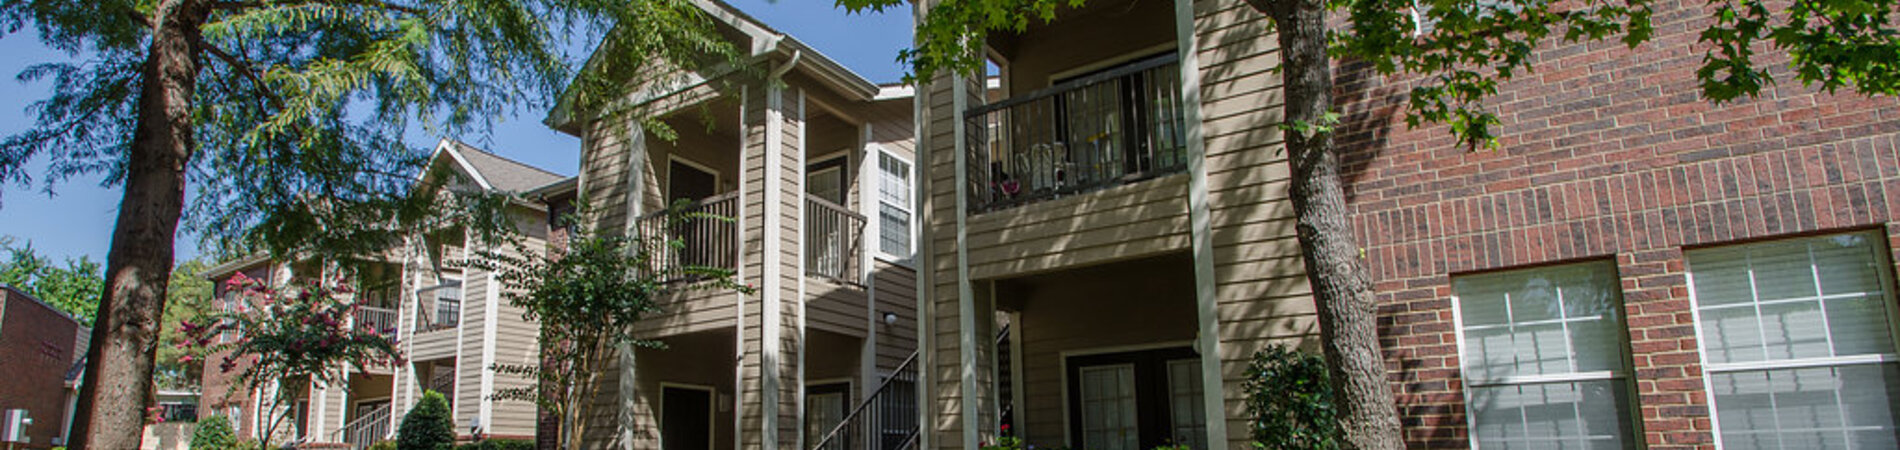 Apartment Rental Amenities In Mckinney Tx Westcreek